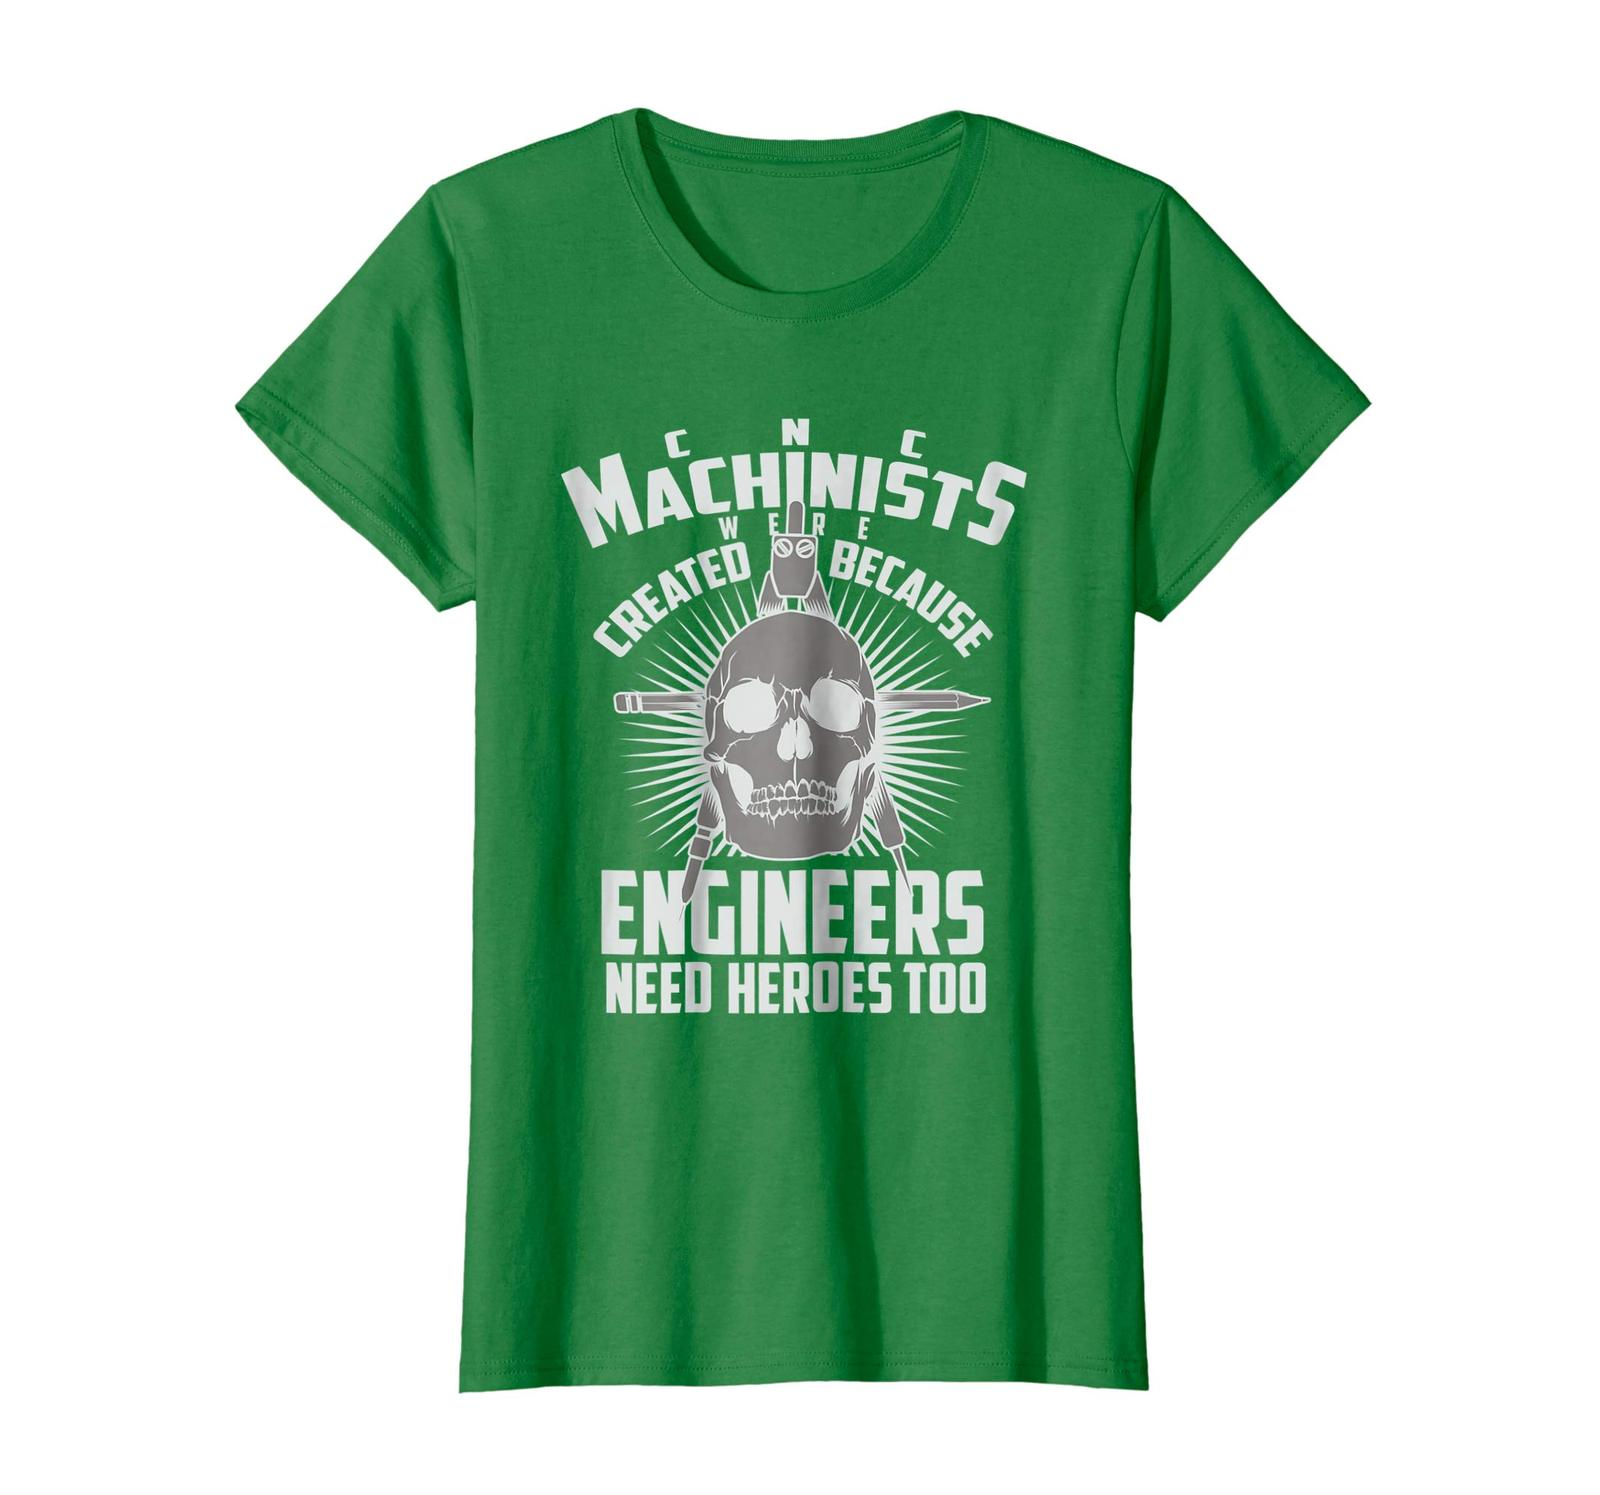 Brother Shirts - CNC Machinists Were Created - Engineers Need Heroes Shirt Wowen